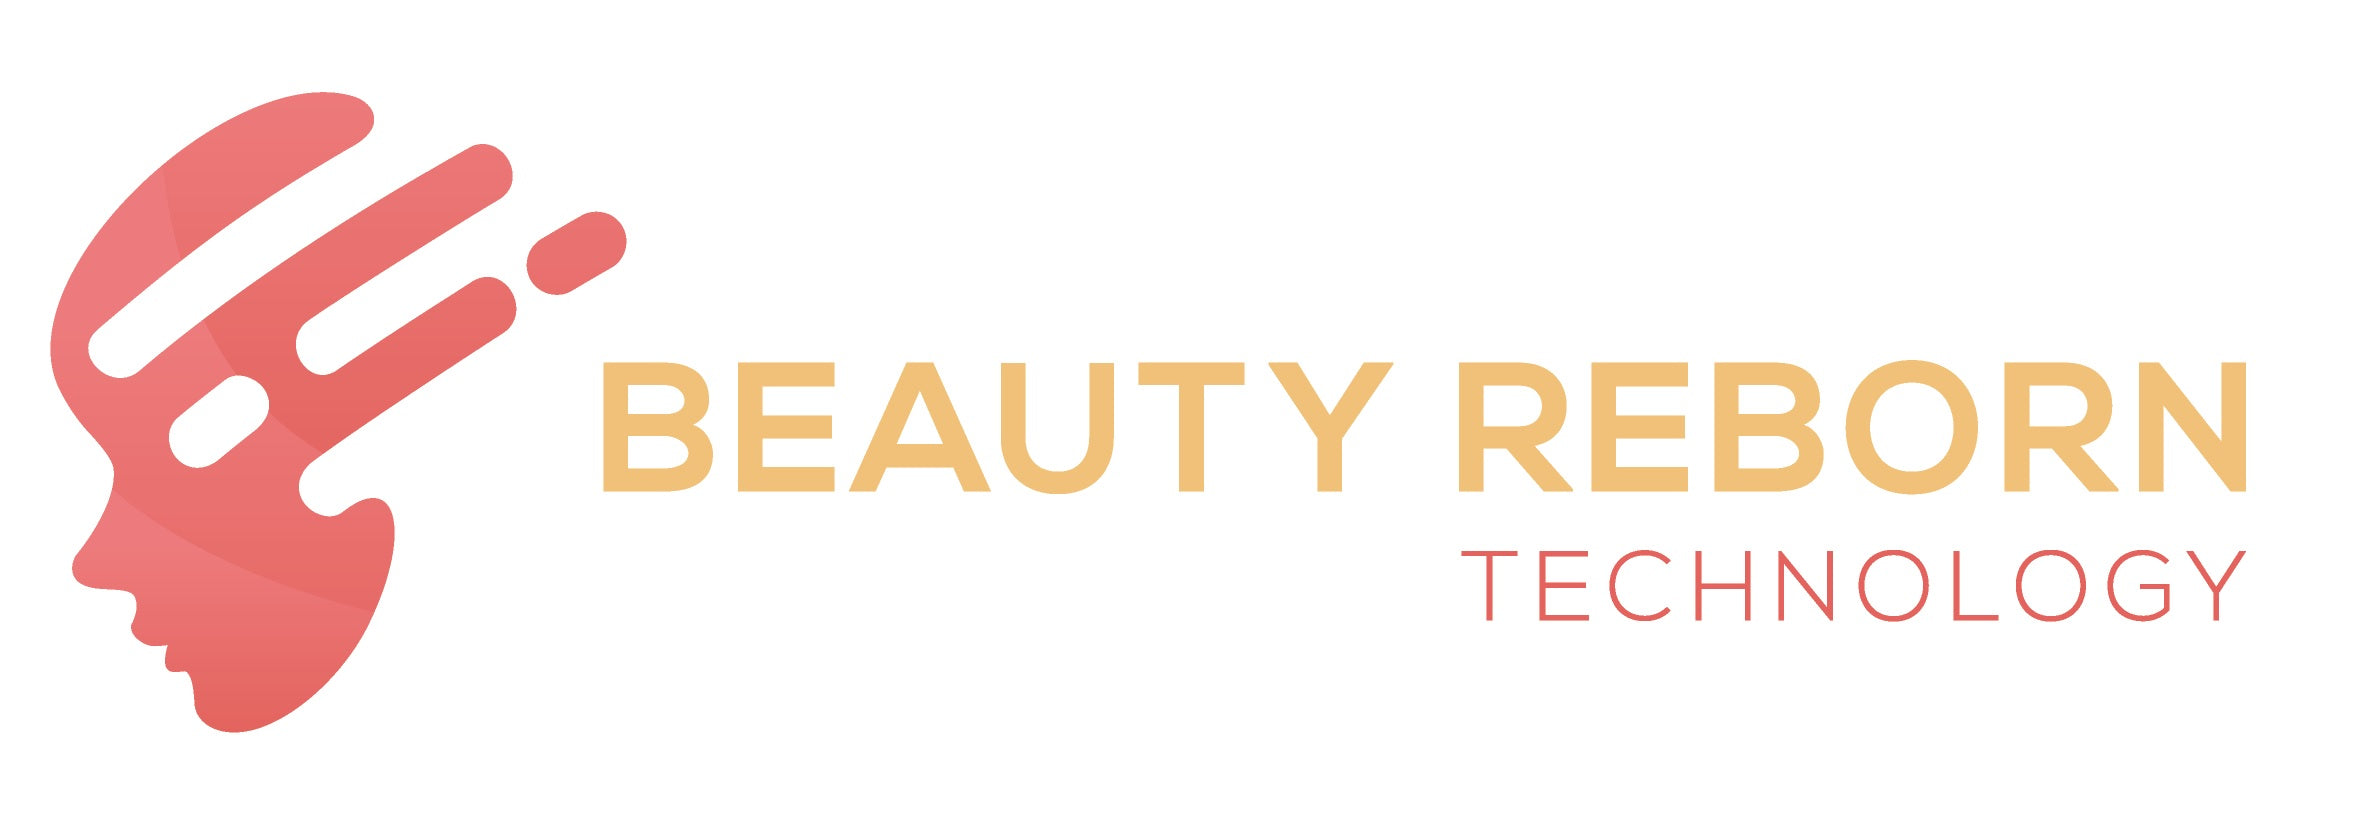 Image result for http://www.beautyreborn.net